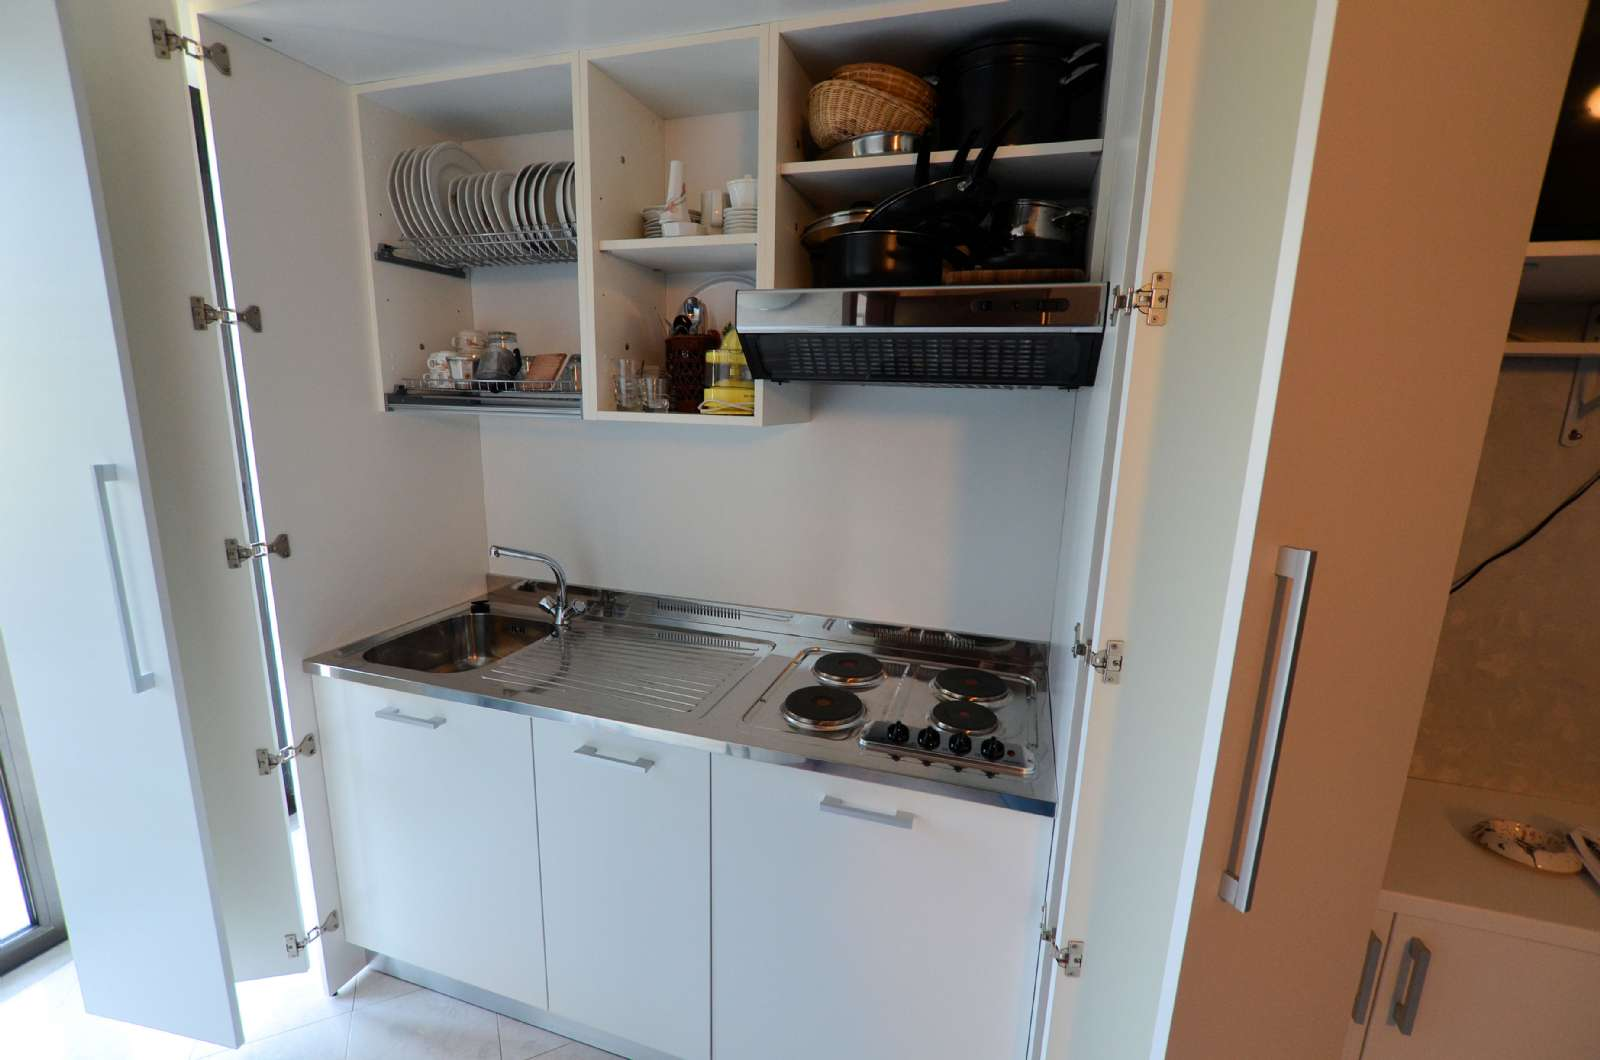 Example of a kitchen in apartments